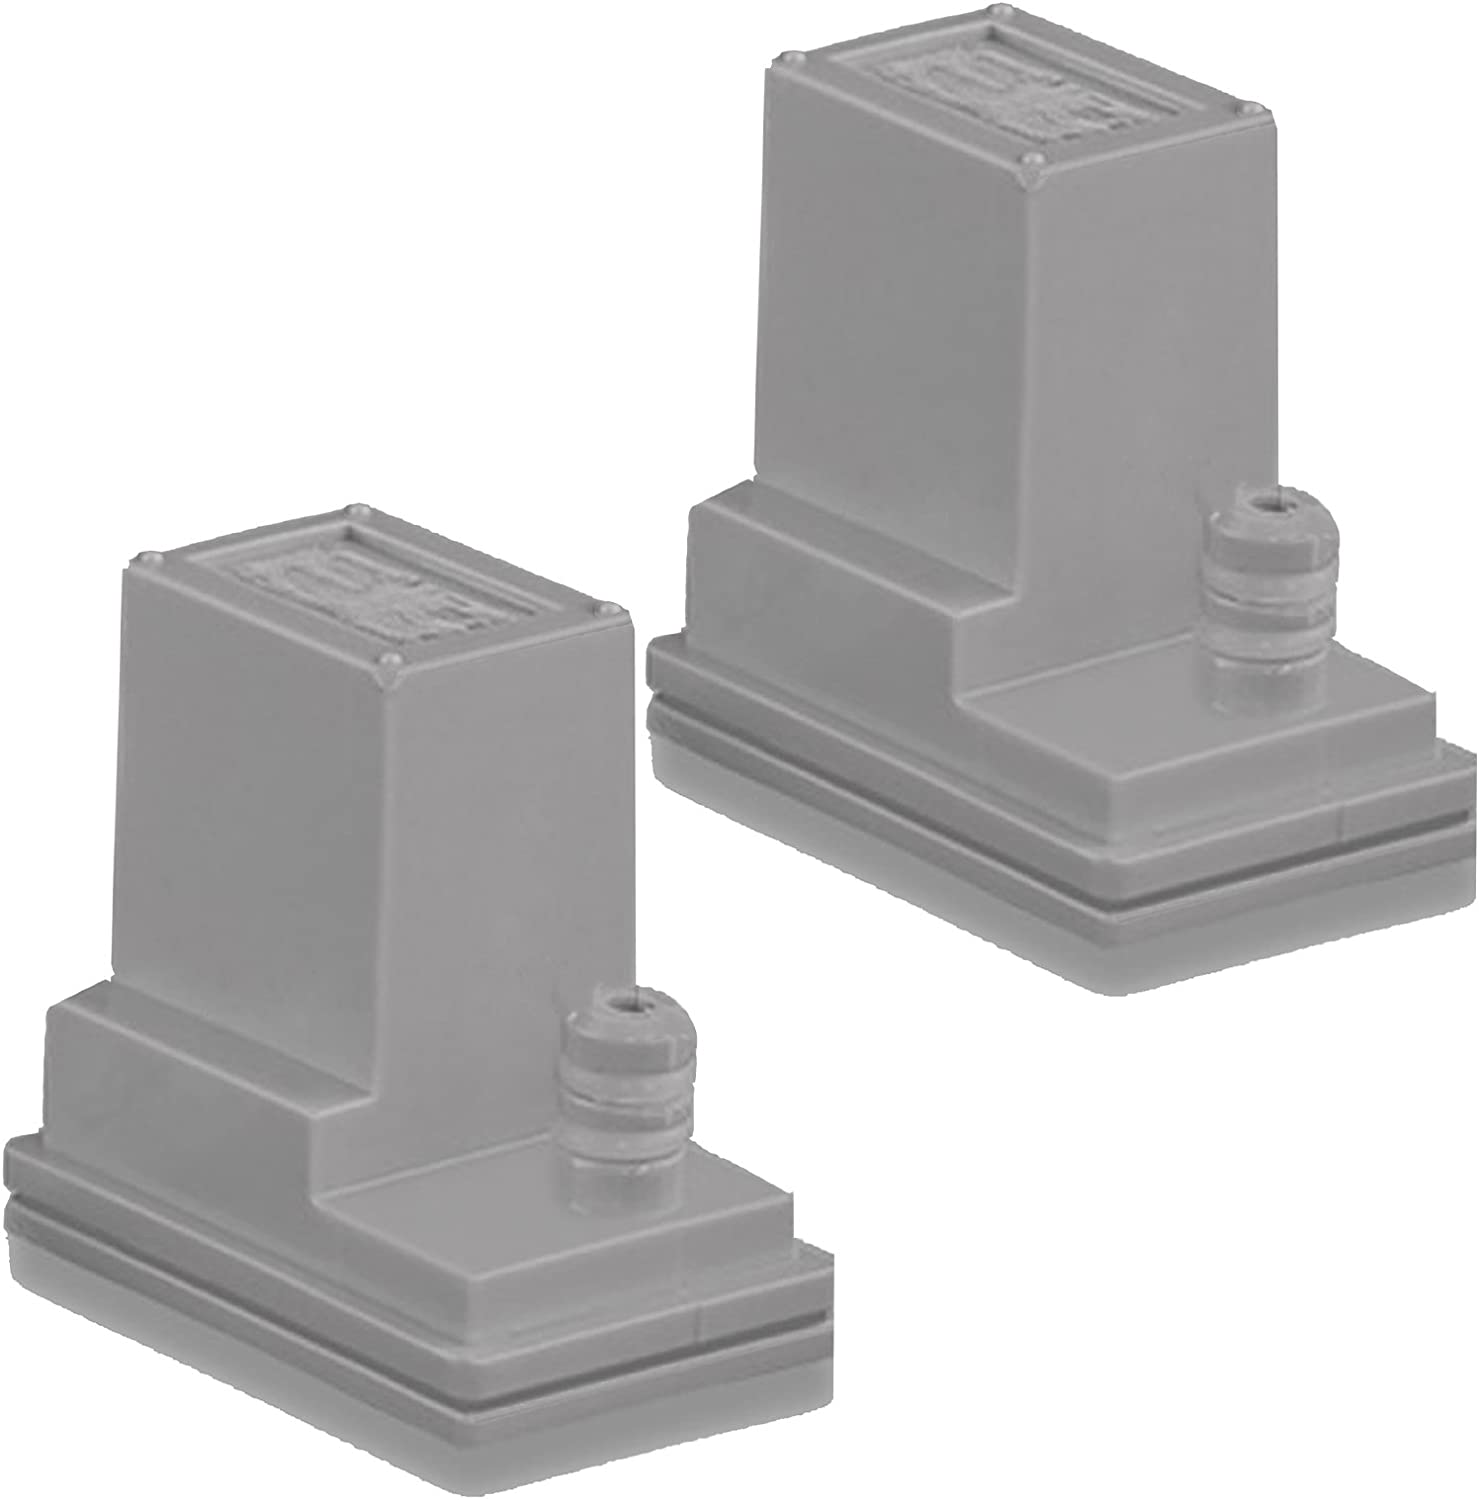 Pack of 4 Cartridges SPARES2GO Anti-Scale Cartridge for Russell Hobbs Steam Iron Generator